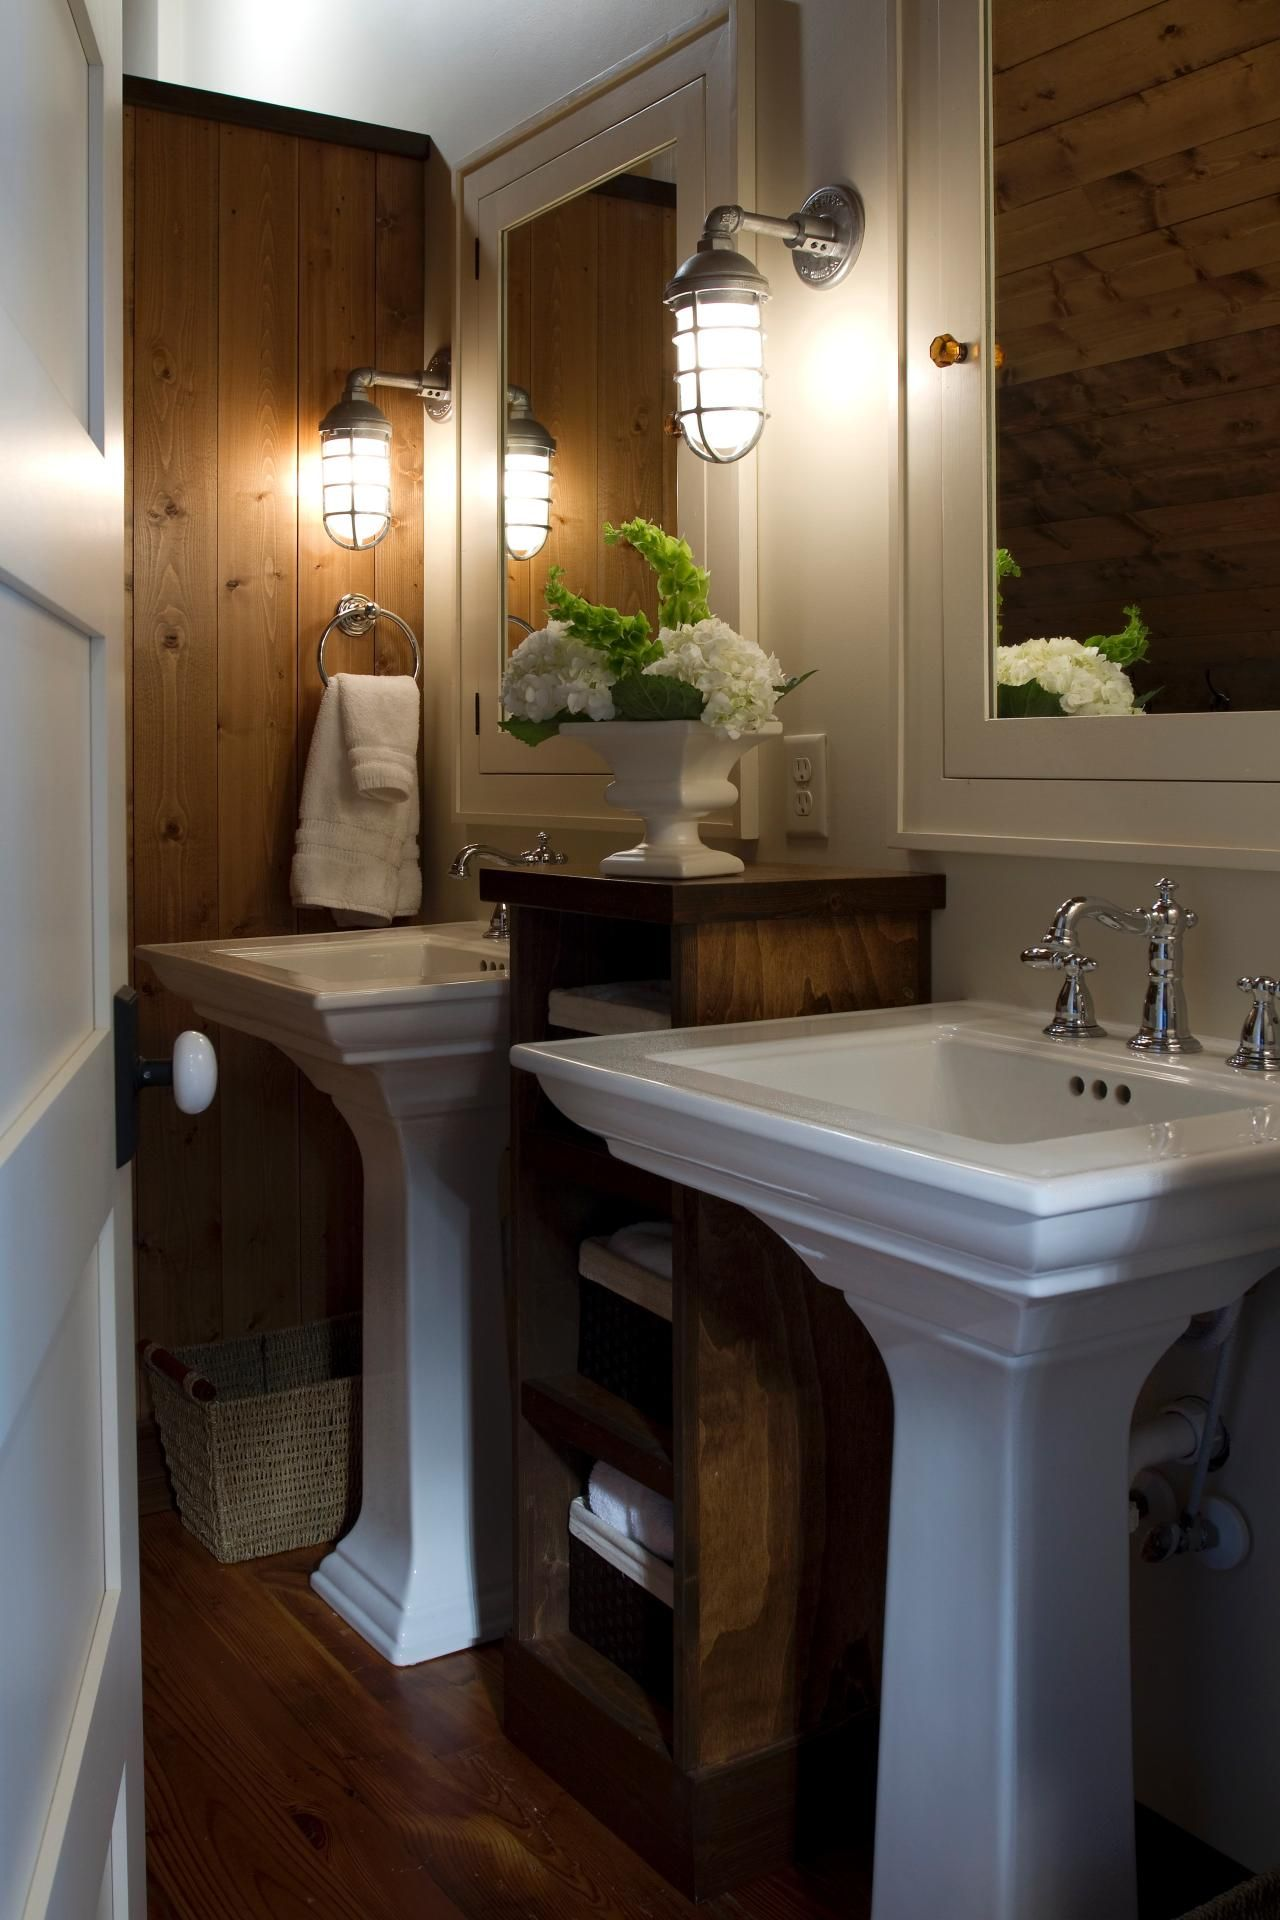 Traditional meets country in this cozy farmhouse bathroom. The ...